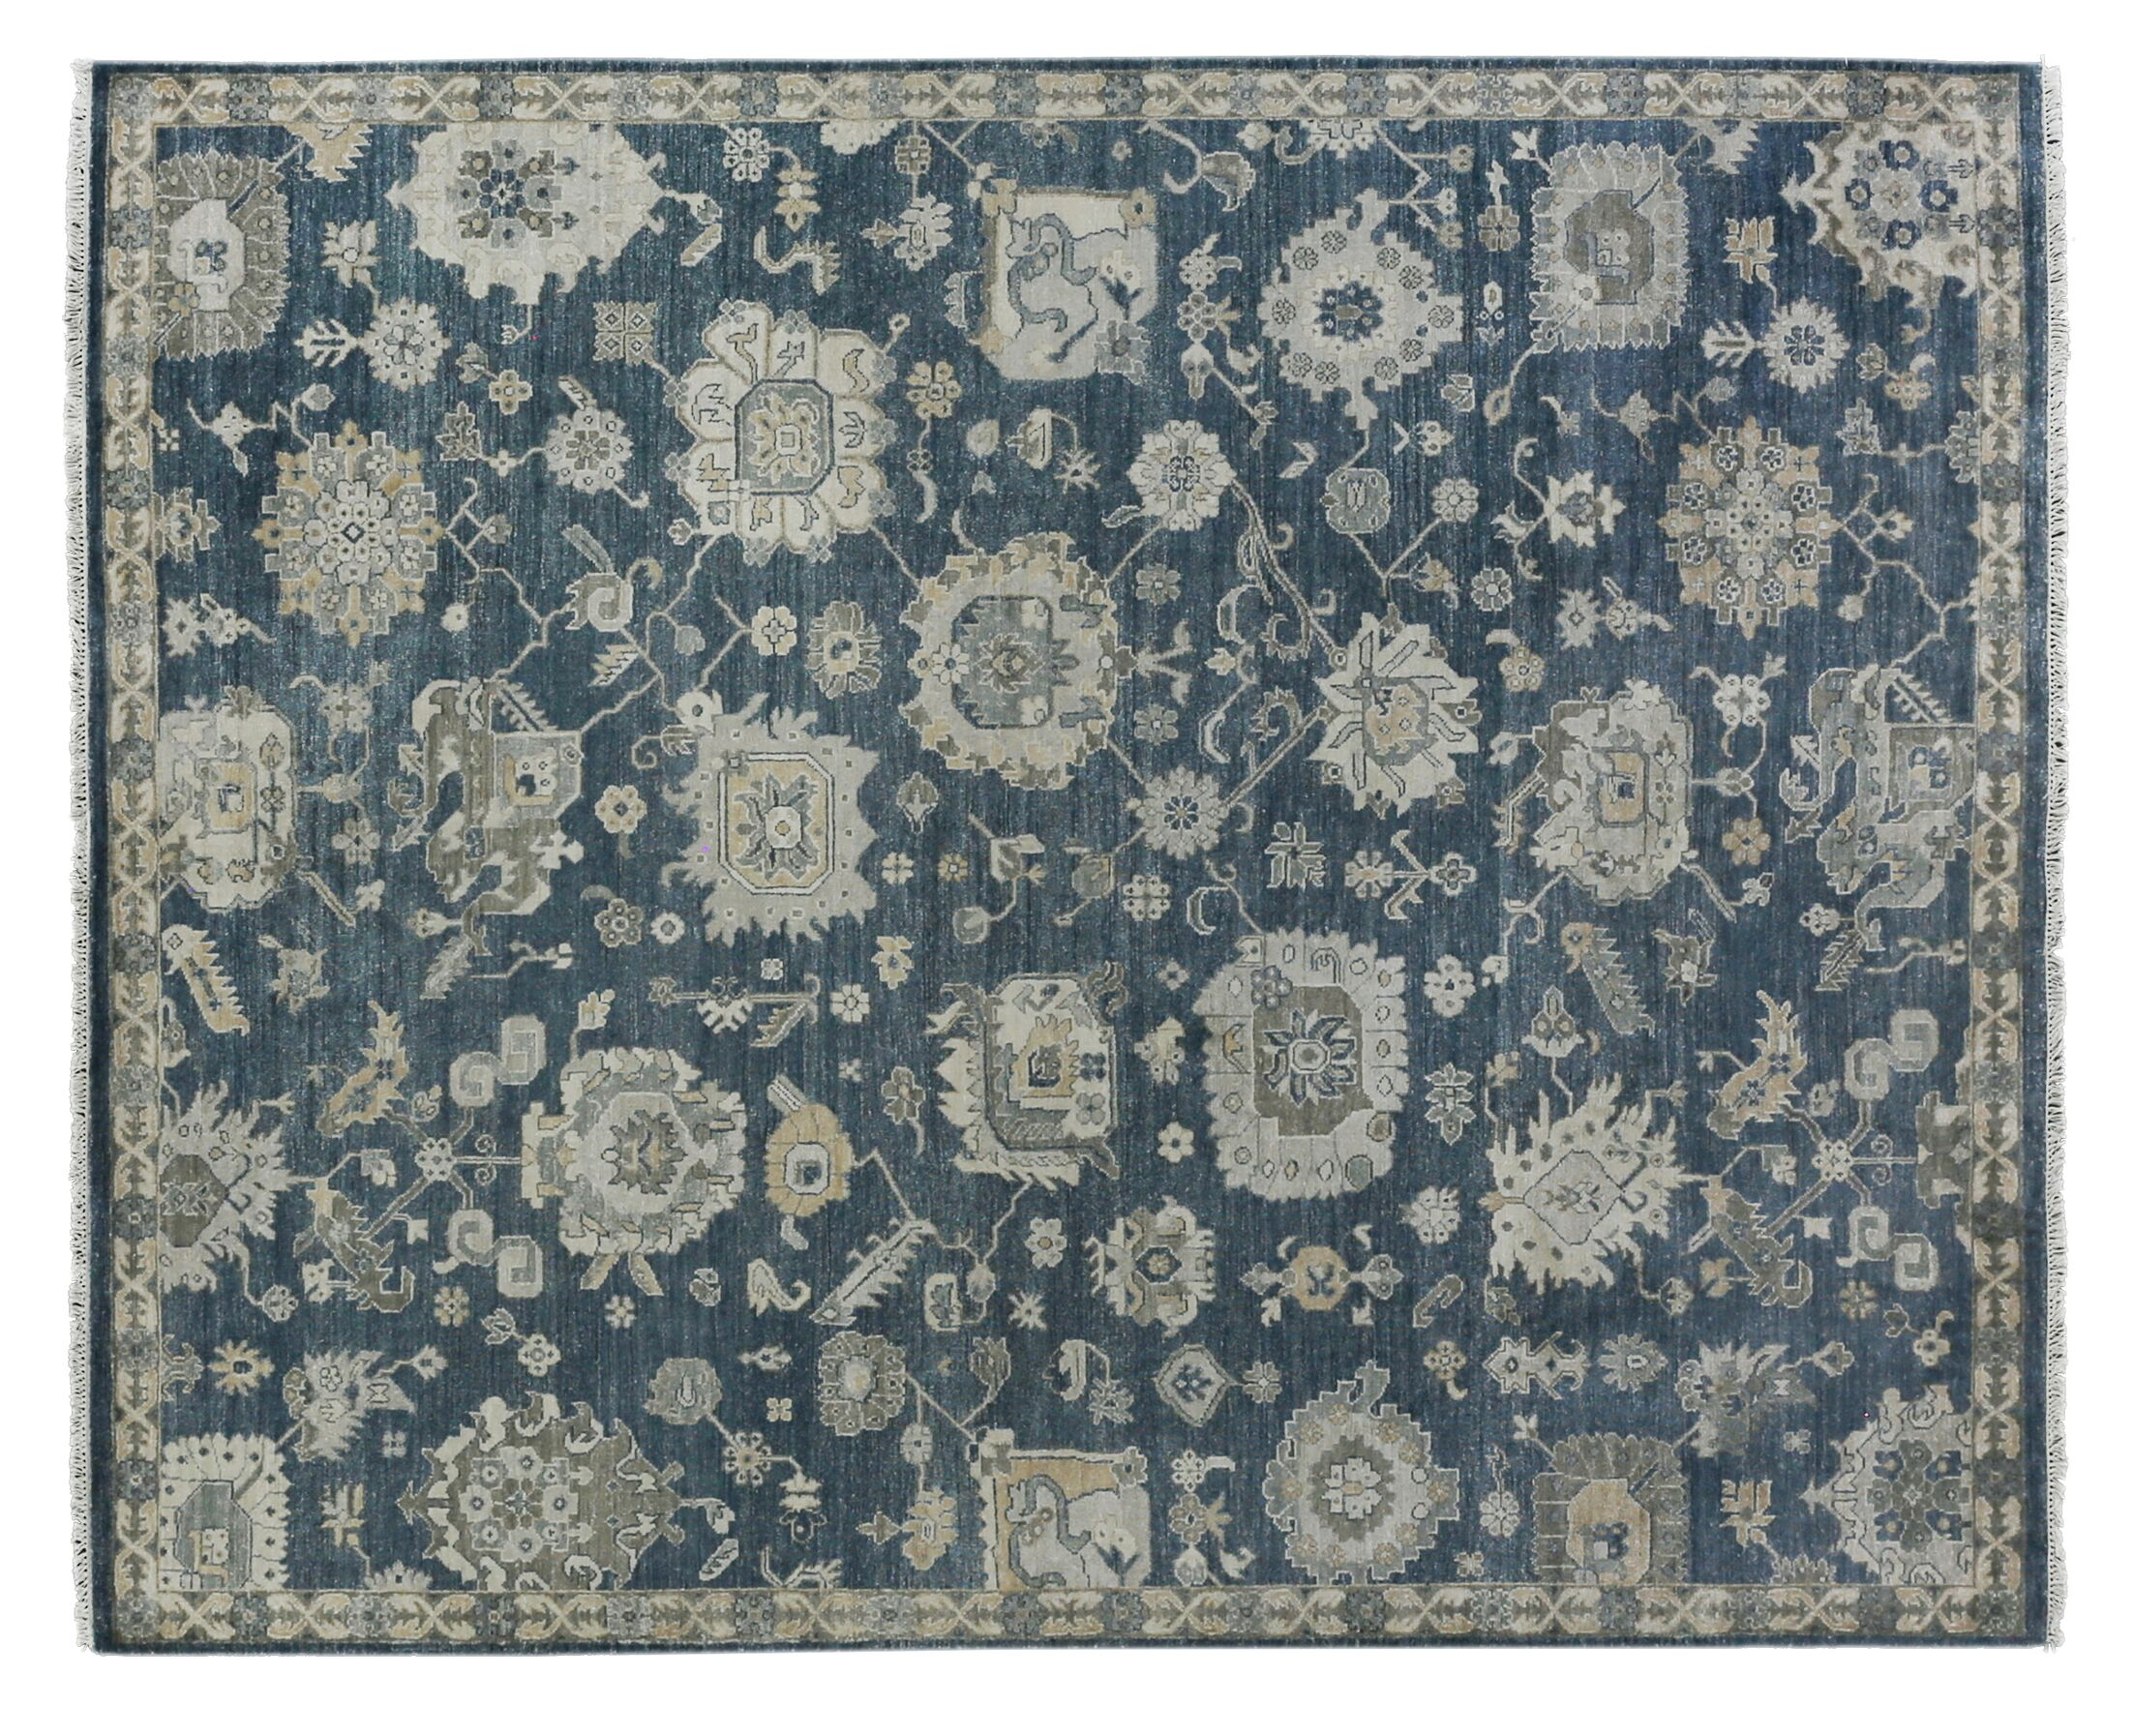 Museum Hand-Knotted Navy/Beige Area Rug Rug Size: Rectangle 8' x 10'